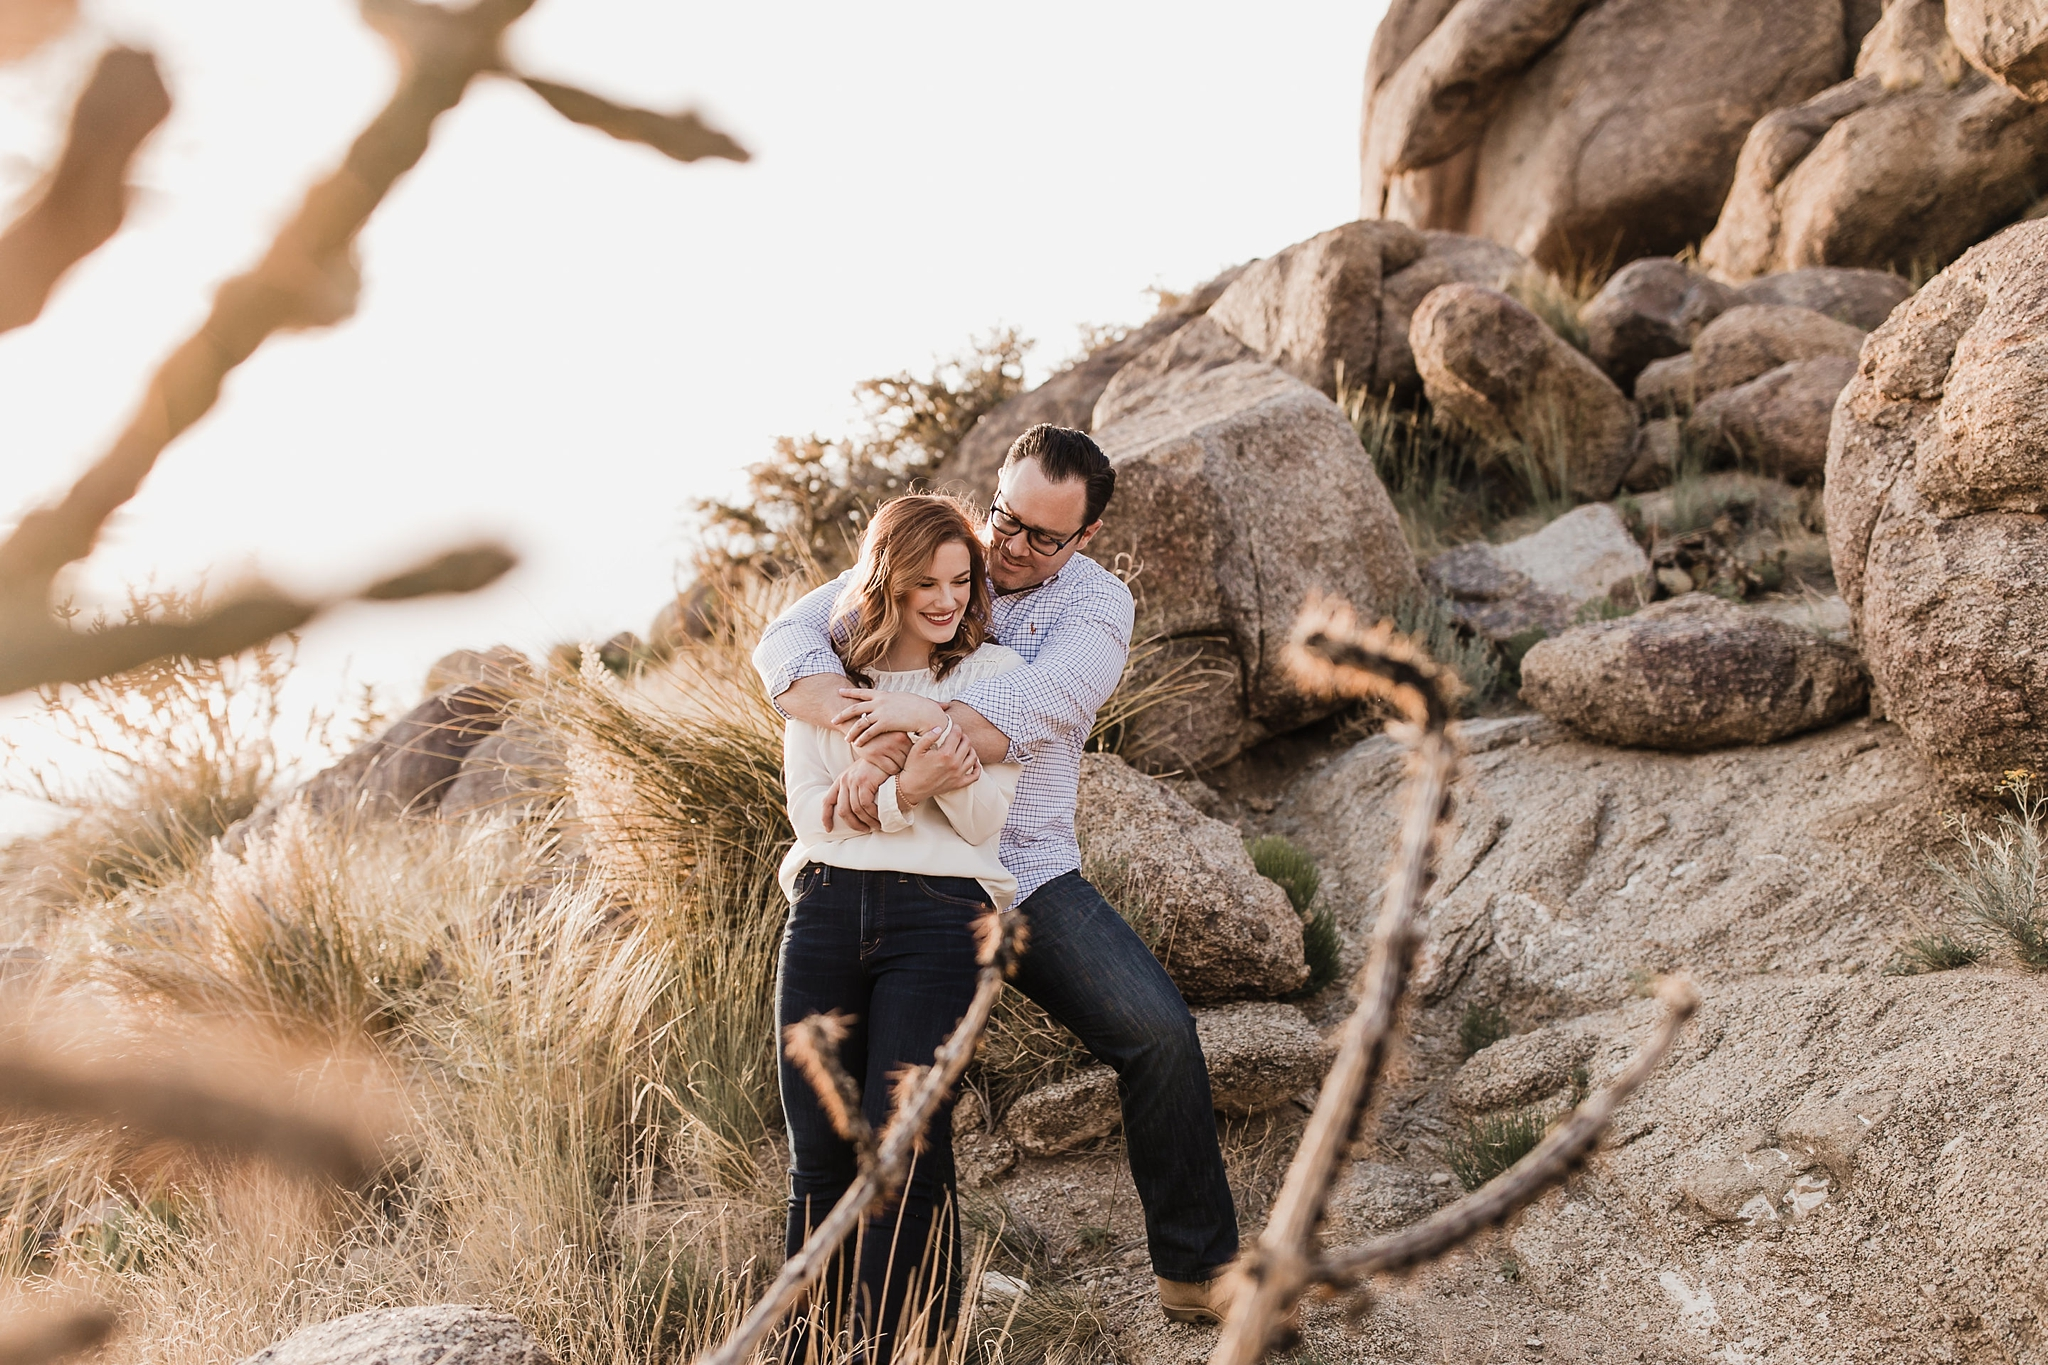 Alicia+lucia+photography+-+albuquerque+wedding+photographer+-+santa+fe+wedding+photography+-+new+mexico+wedding+photographer+-+new+mexico+wedding+-+new+mexico+engagement+-+engagement+photographer+-+mountain+engagement+-+desert+engagement_0006.jpg